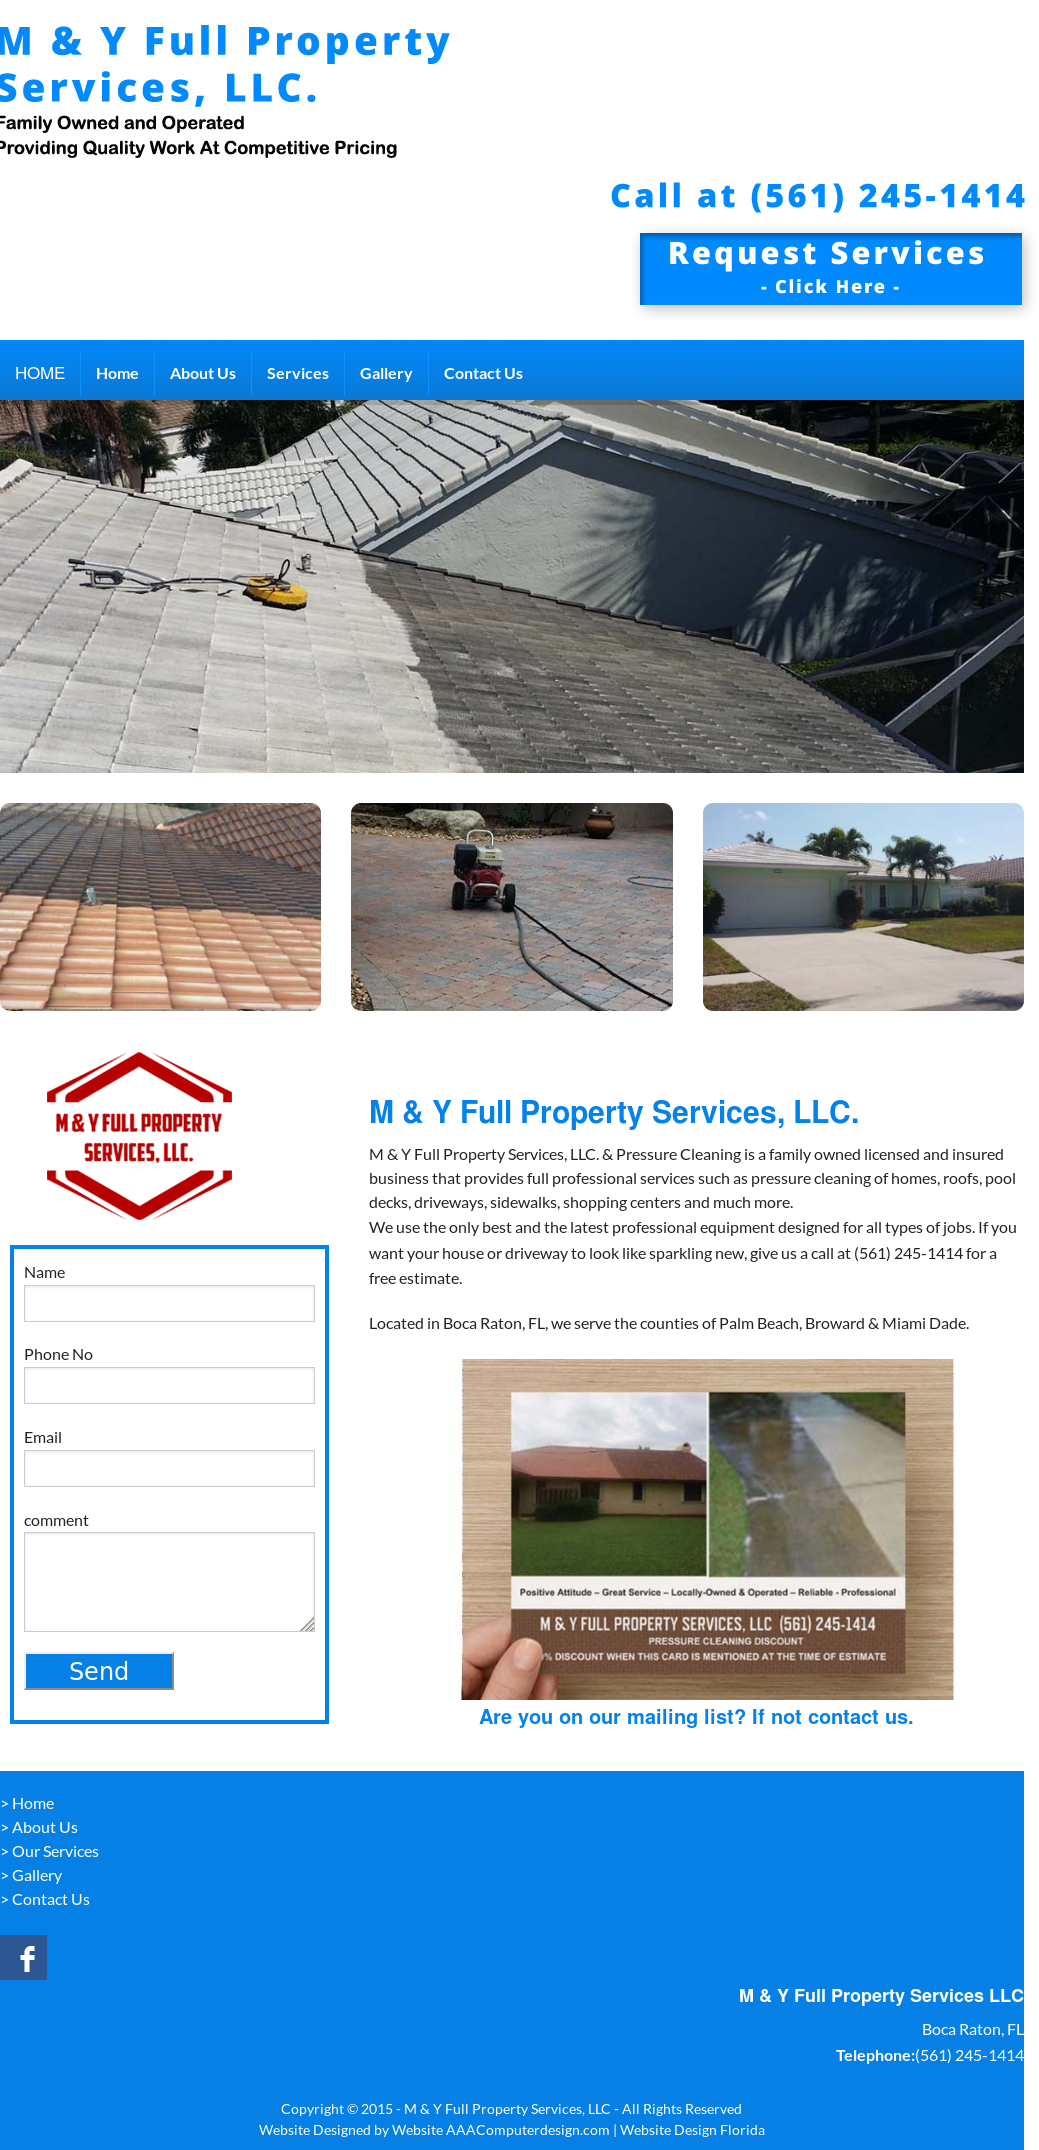 M & Y Full Property Services, Llc  & Pressure Cleaning Competitors